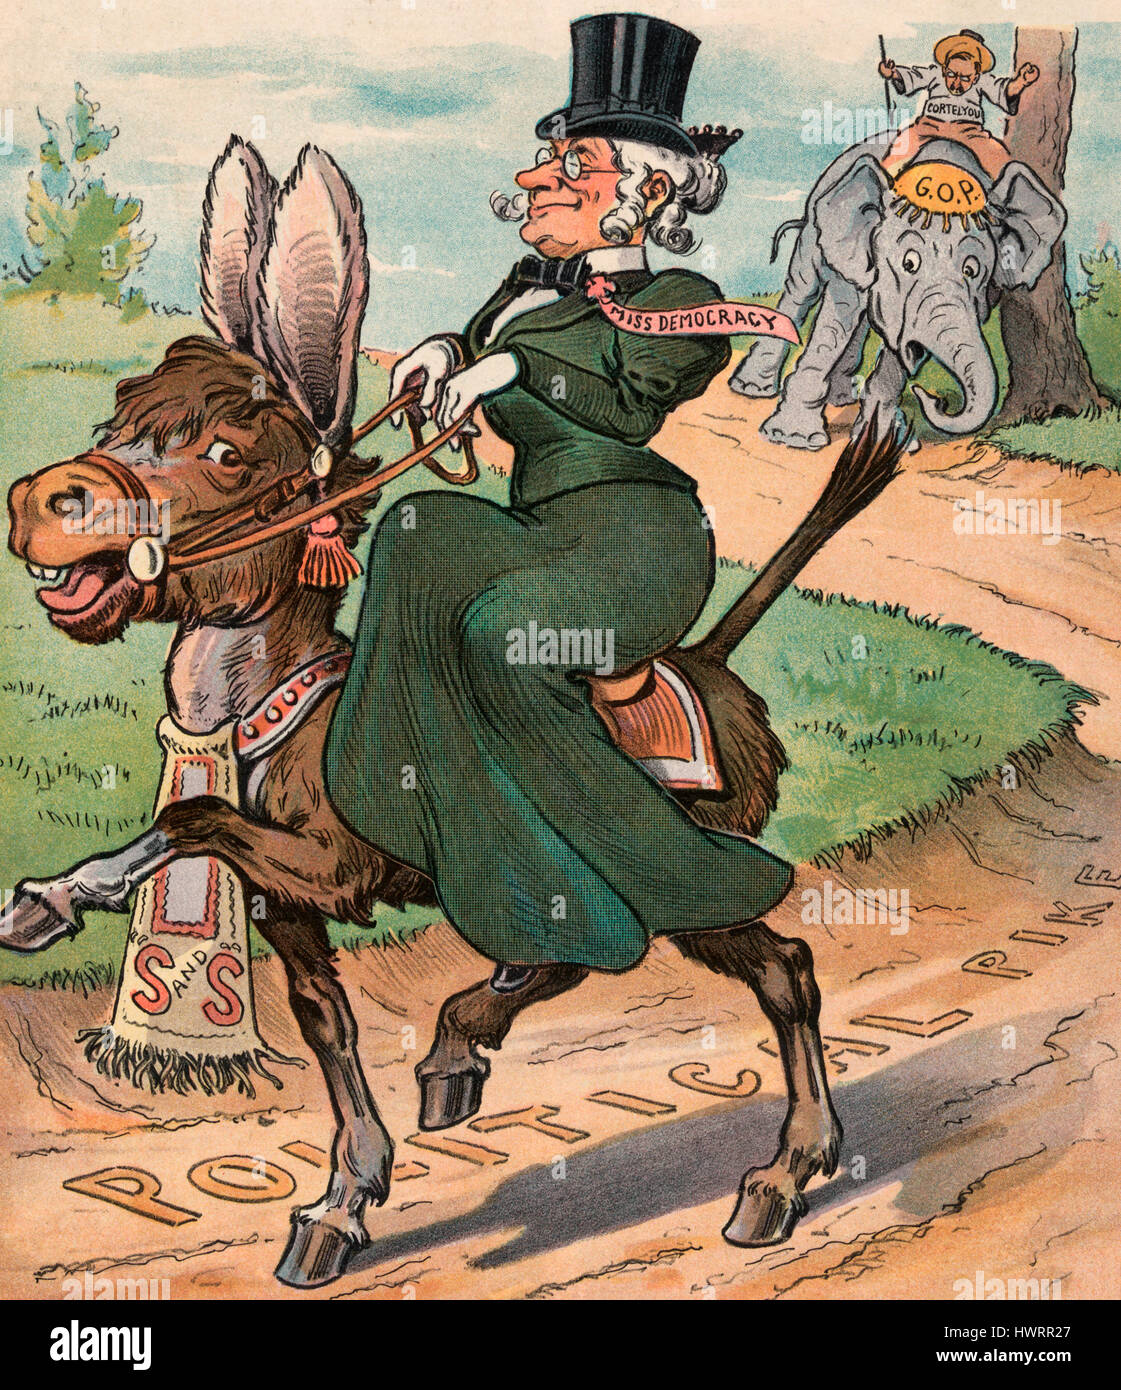 Transformed -  Illustration shows an old woman labeled 'Miss Democracy' riding on the Democratic donkey - Stock Image